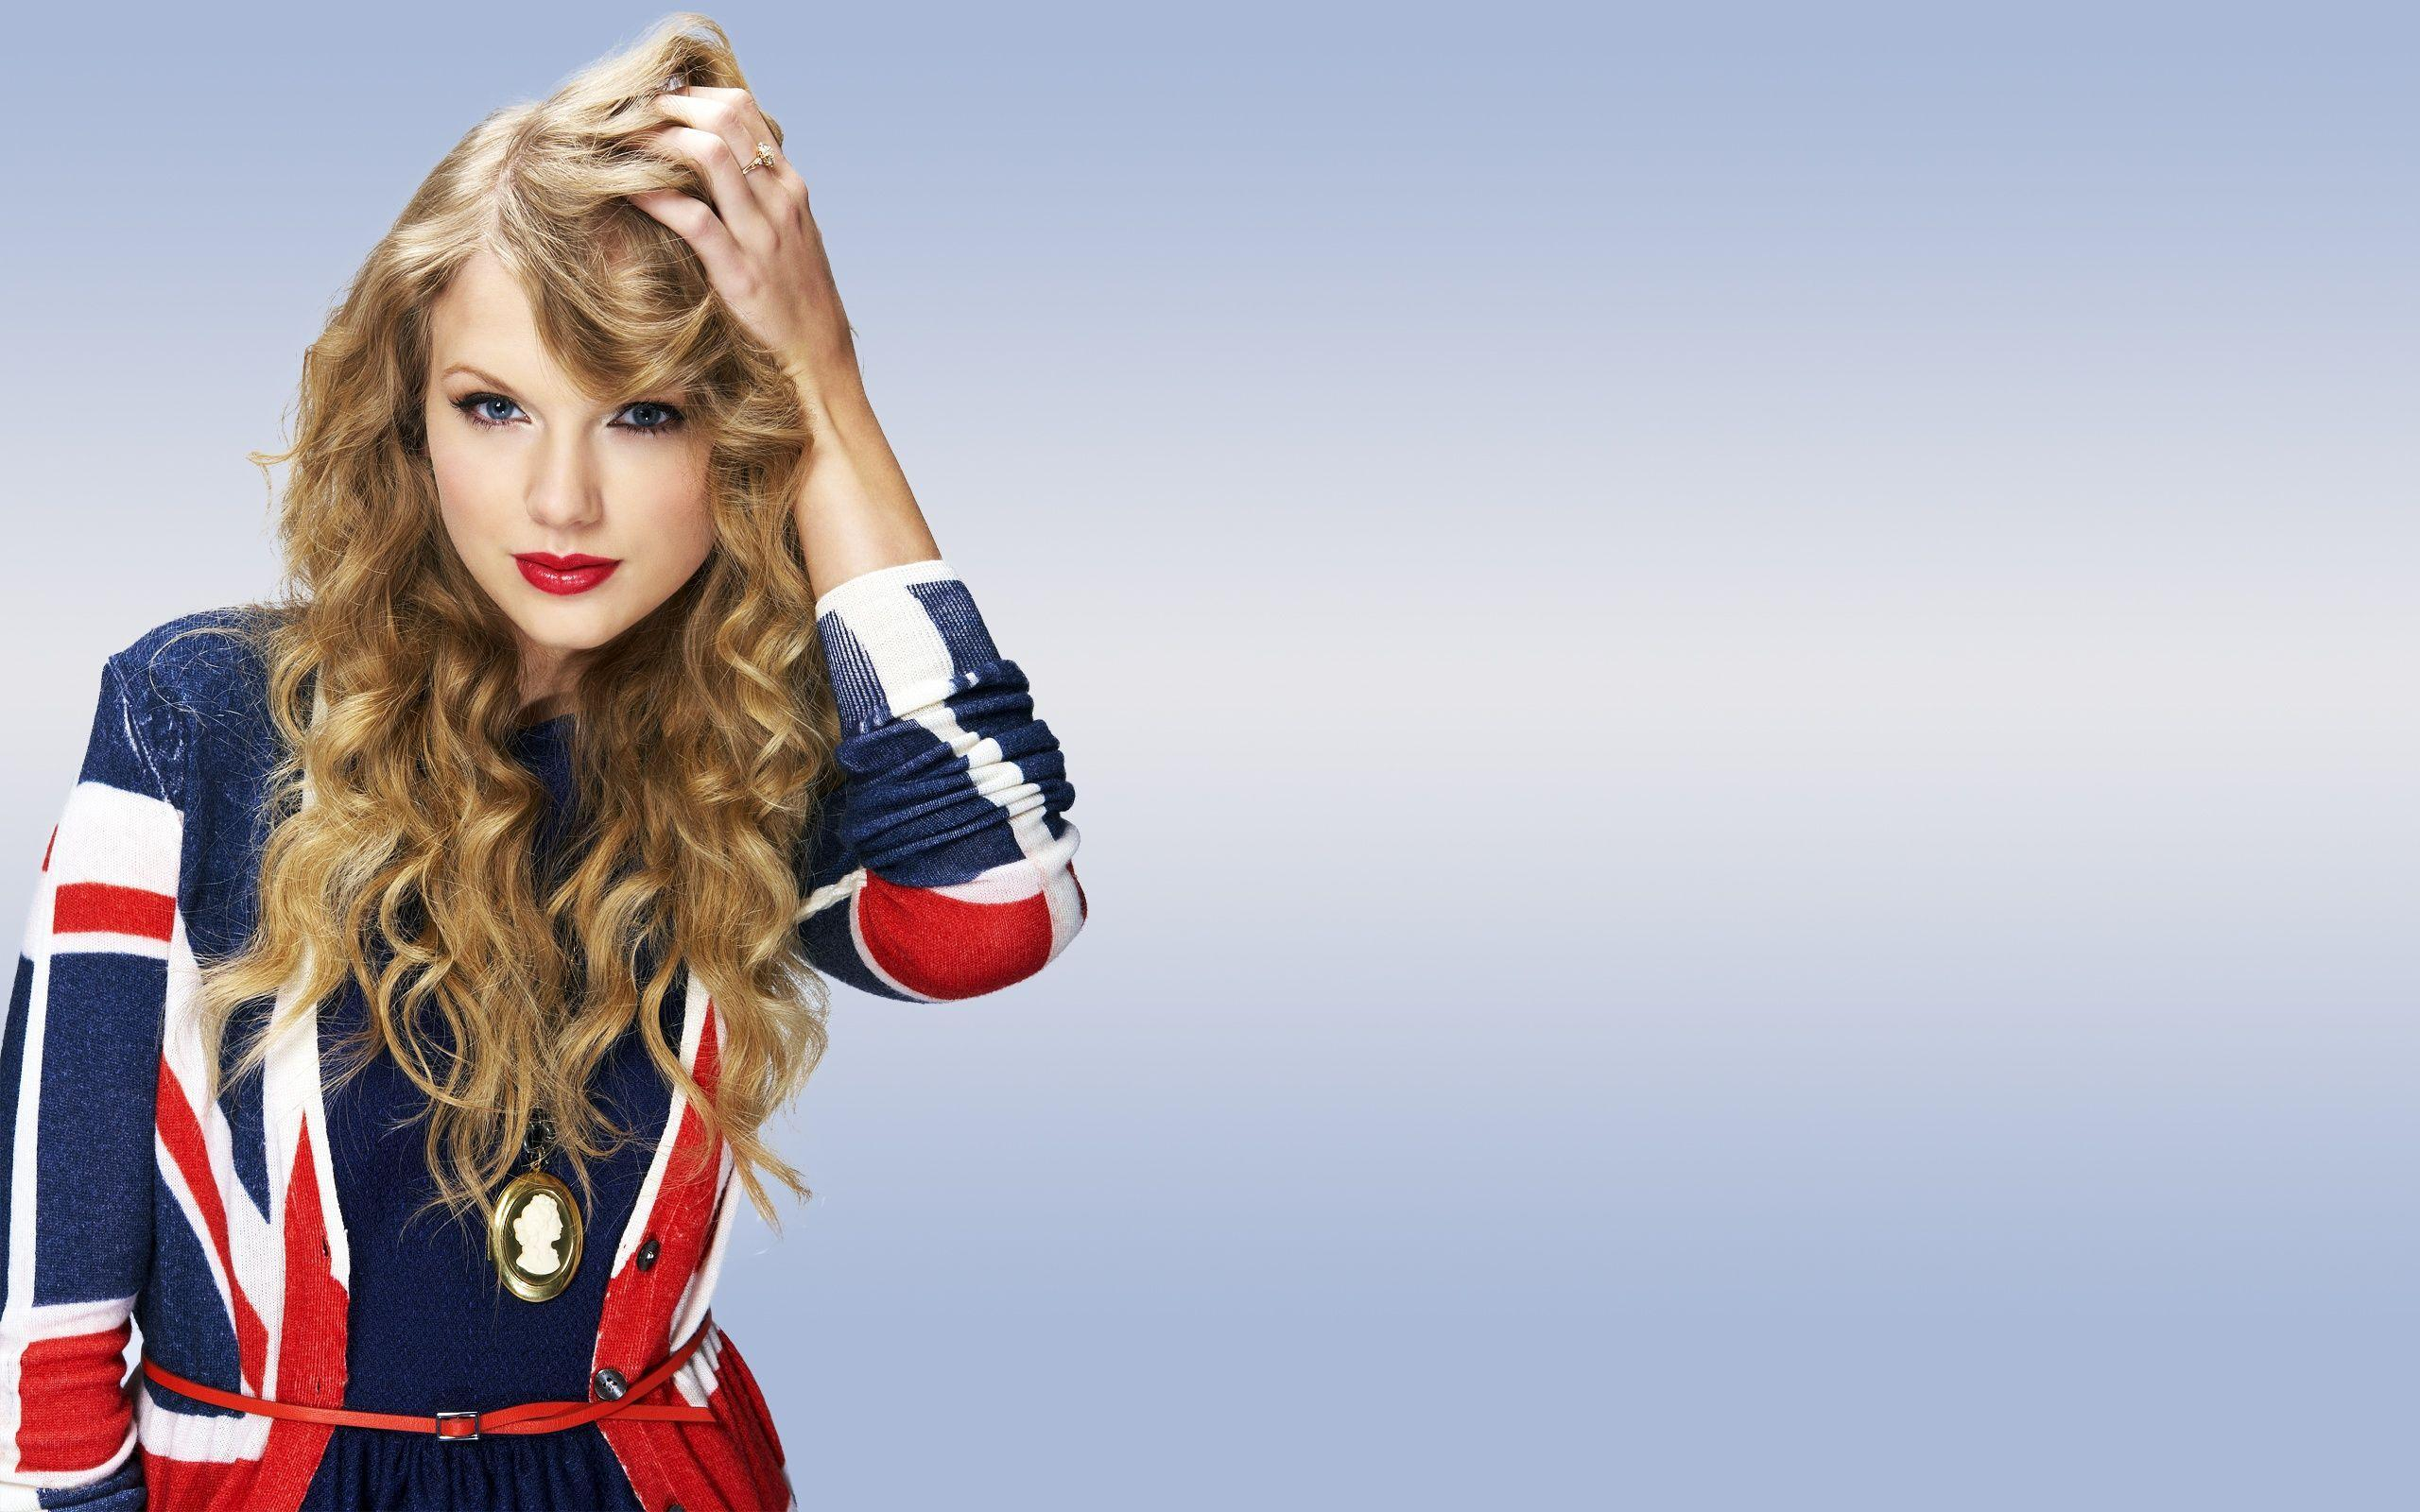 Taylor Swift 2017 Wallpapers 2560x1600